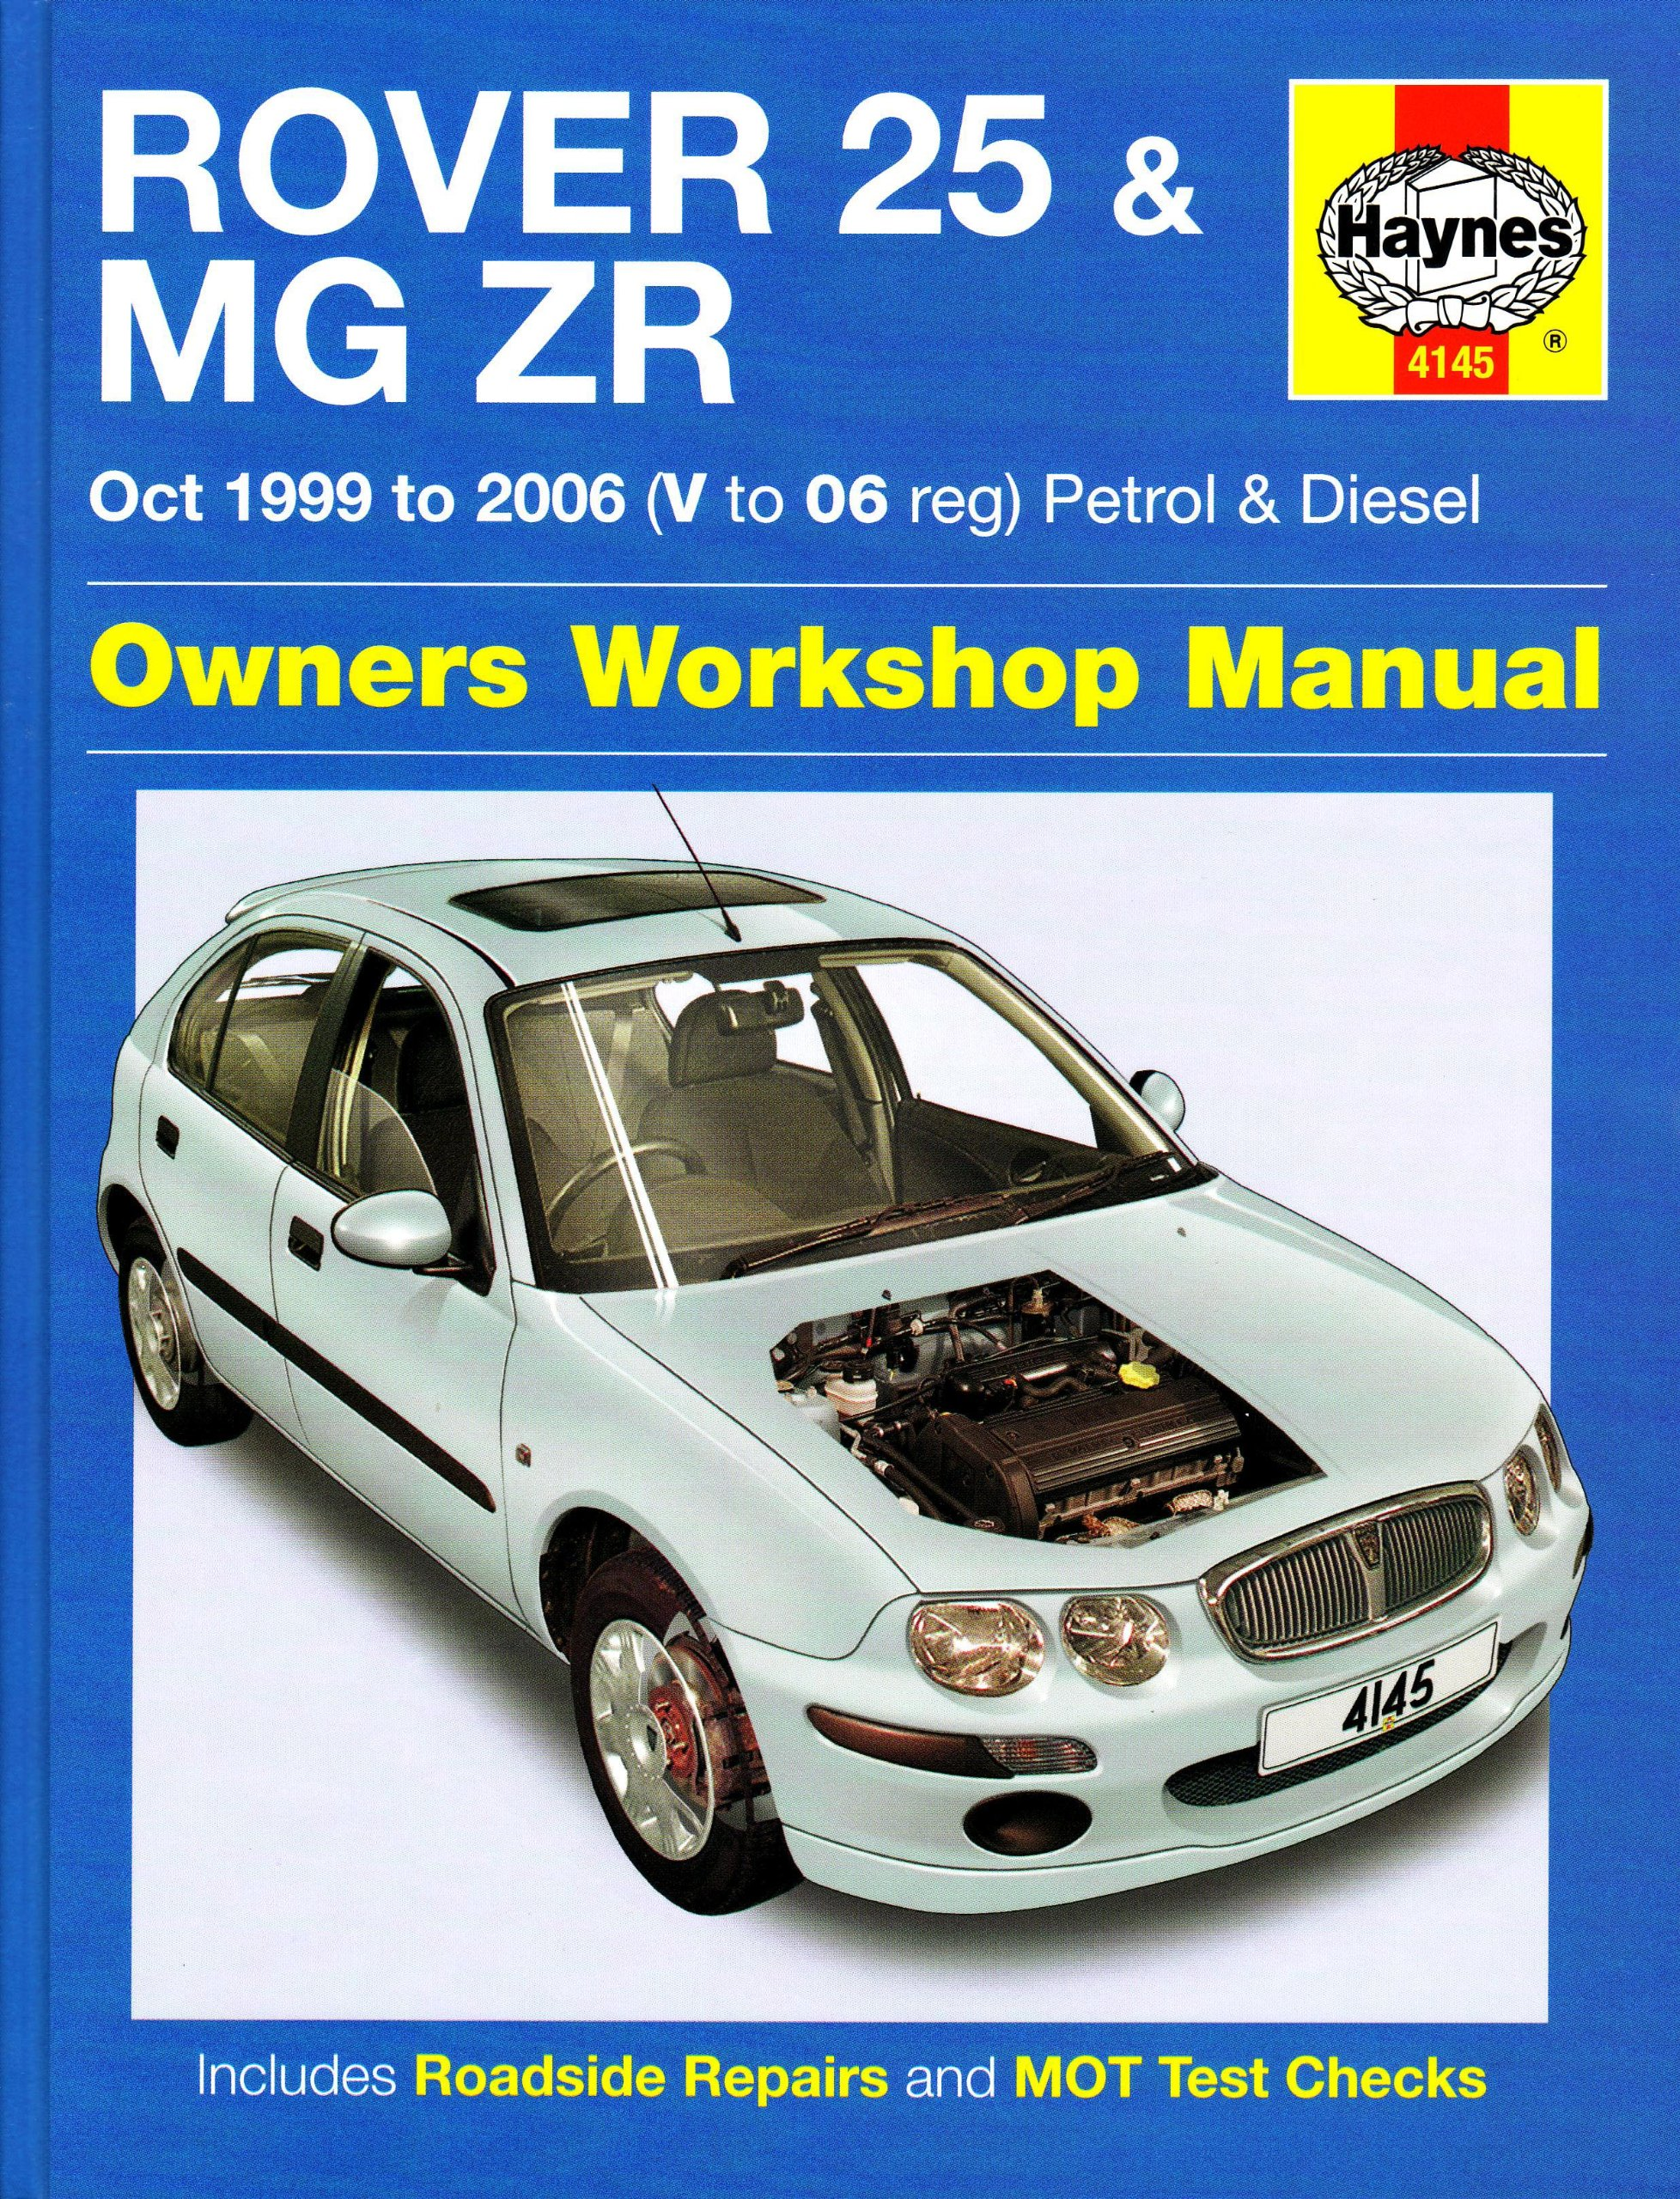 A1G5eyk3utL rover 25 and mg zr petrol and diesel 99 06 (service & repair rover 25 wiring diagram pdf at reclaimingppi.co